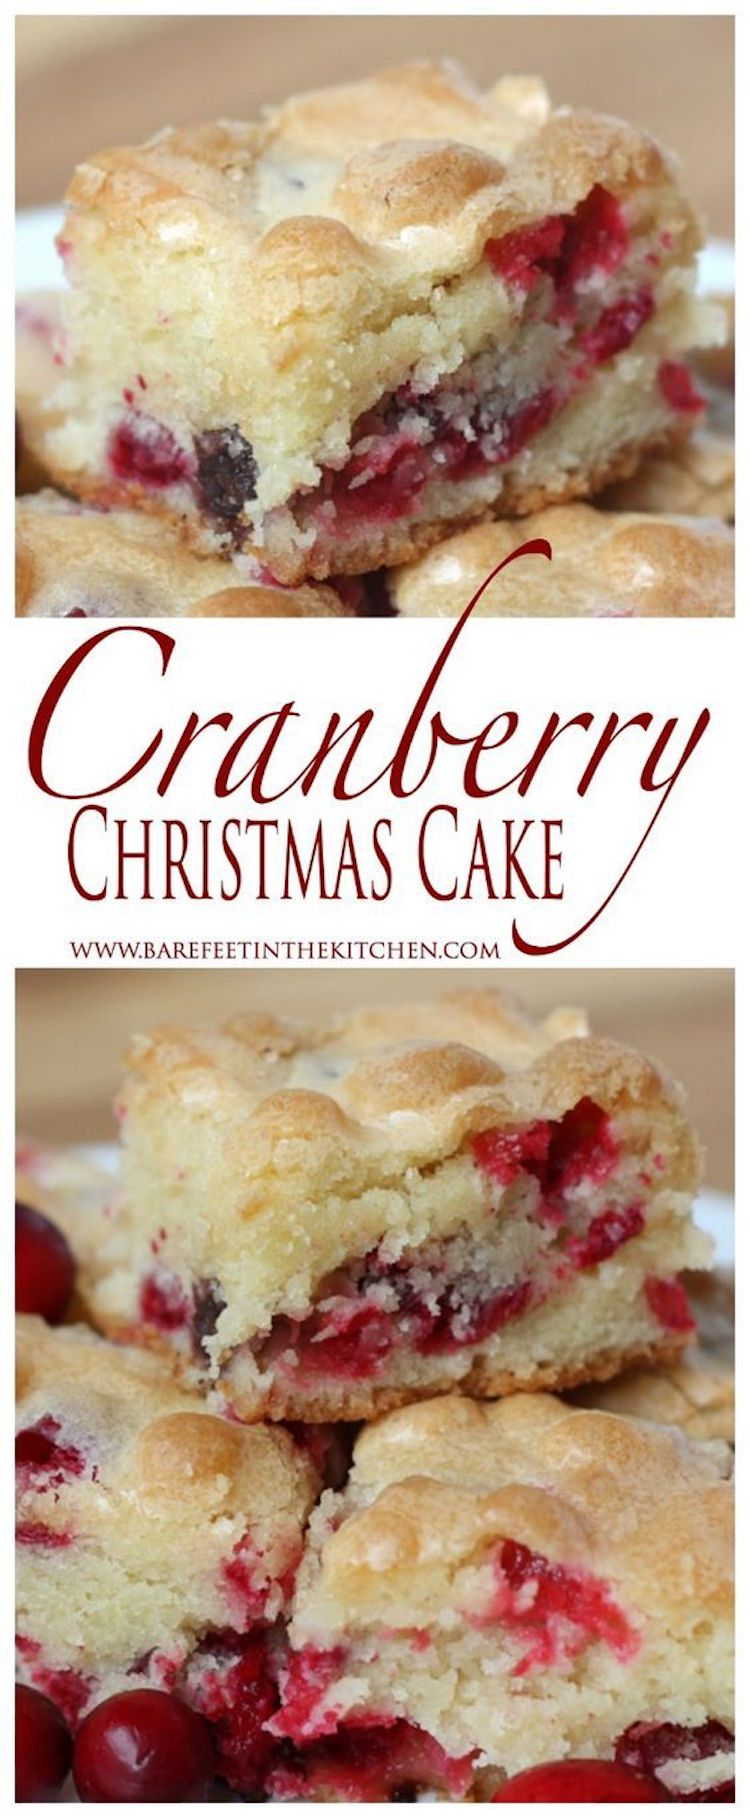 Delicious Cranberry Christmas Cake Recipe